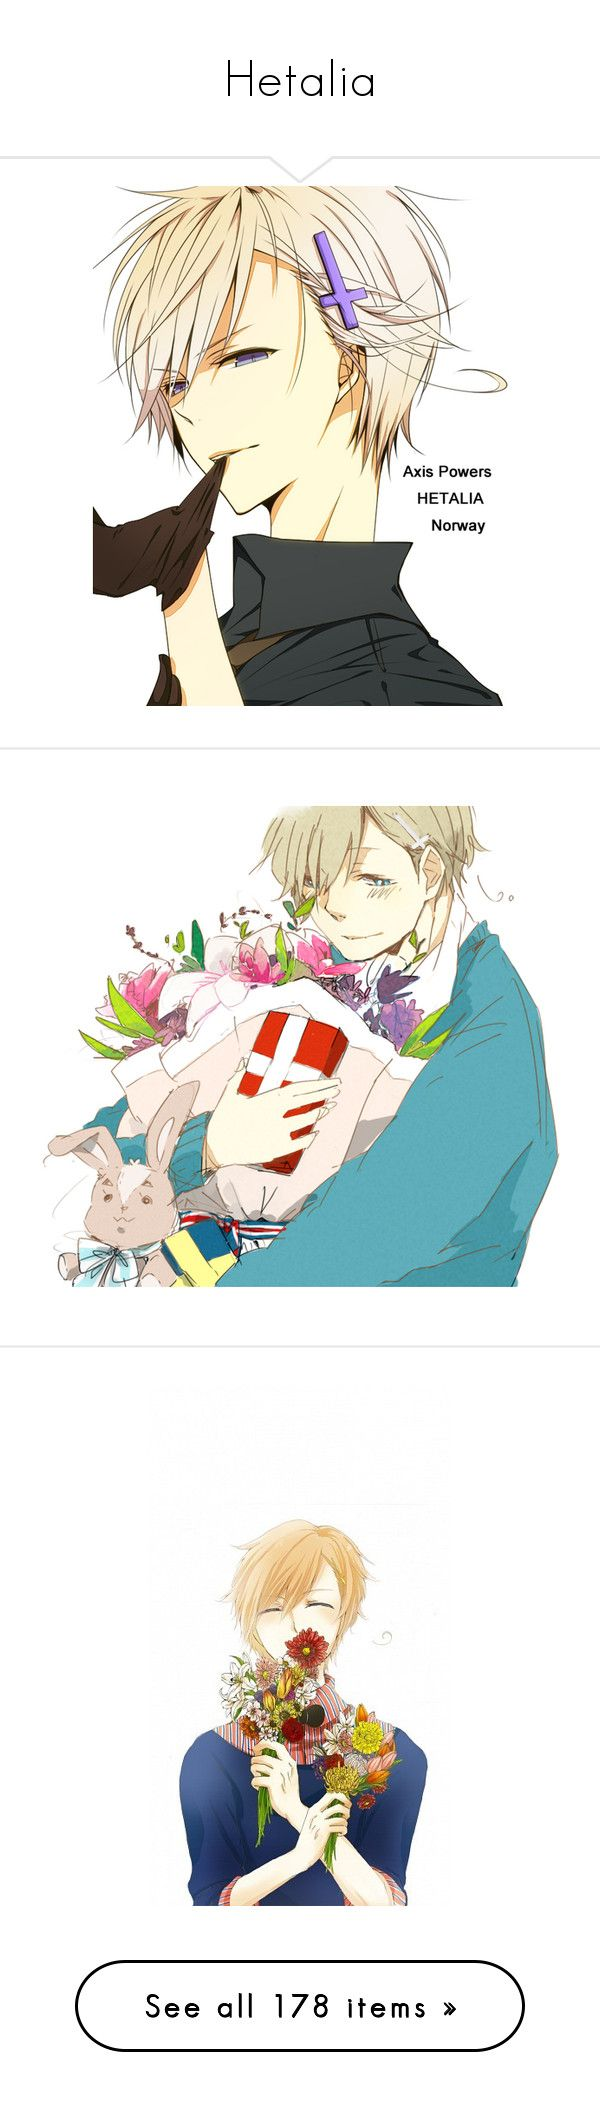 """Hetalia"" by chibi-space-gal ❤ liked on Polyvore featuring hetalia, norway, anime, drawings, render, characters, home, home decor, backgrounds and couples"